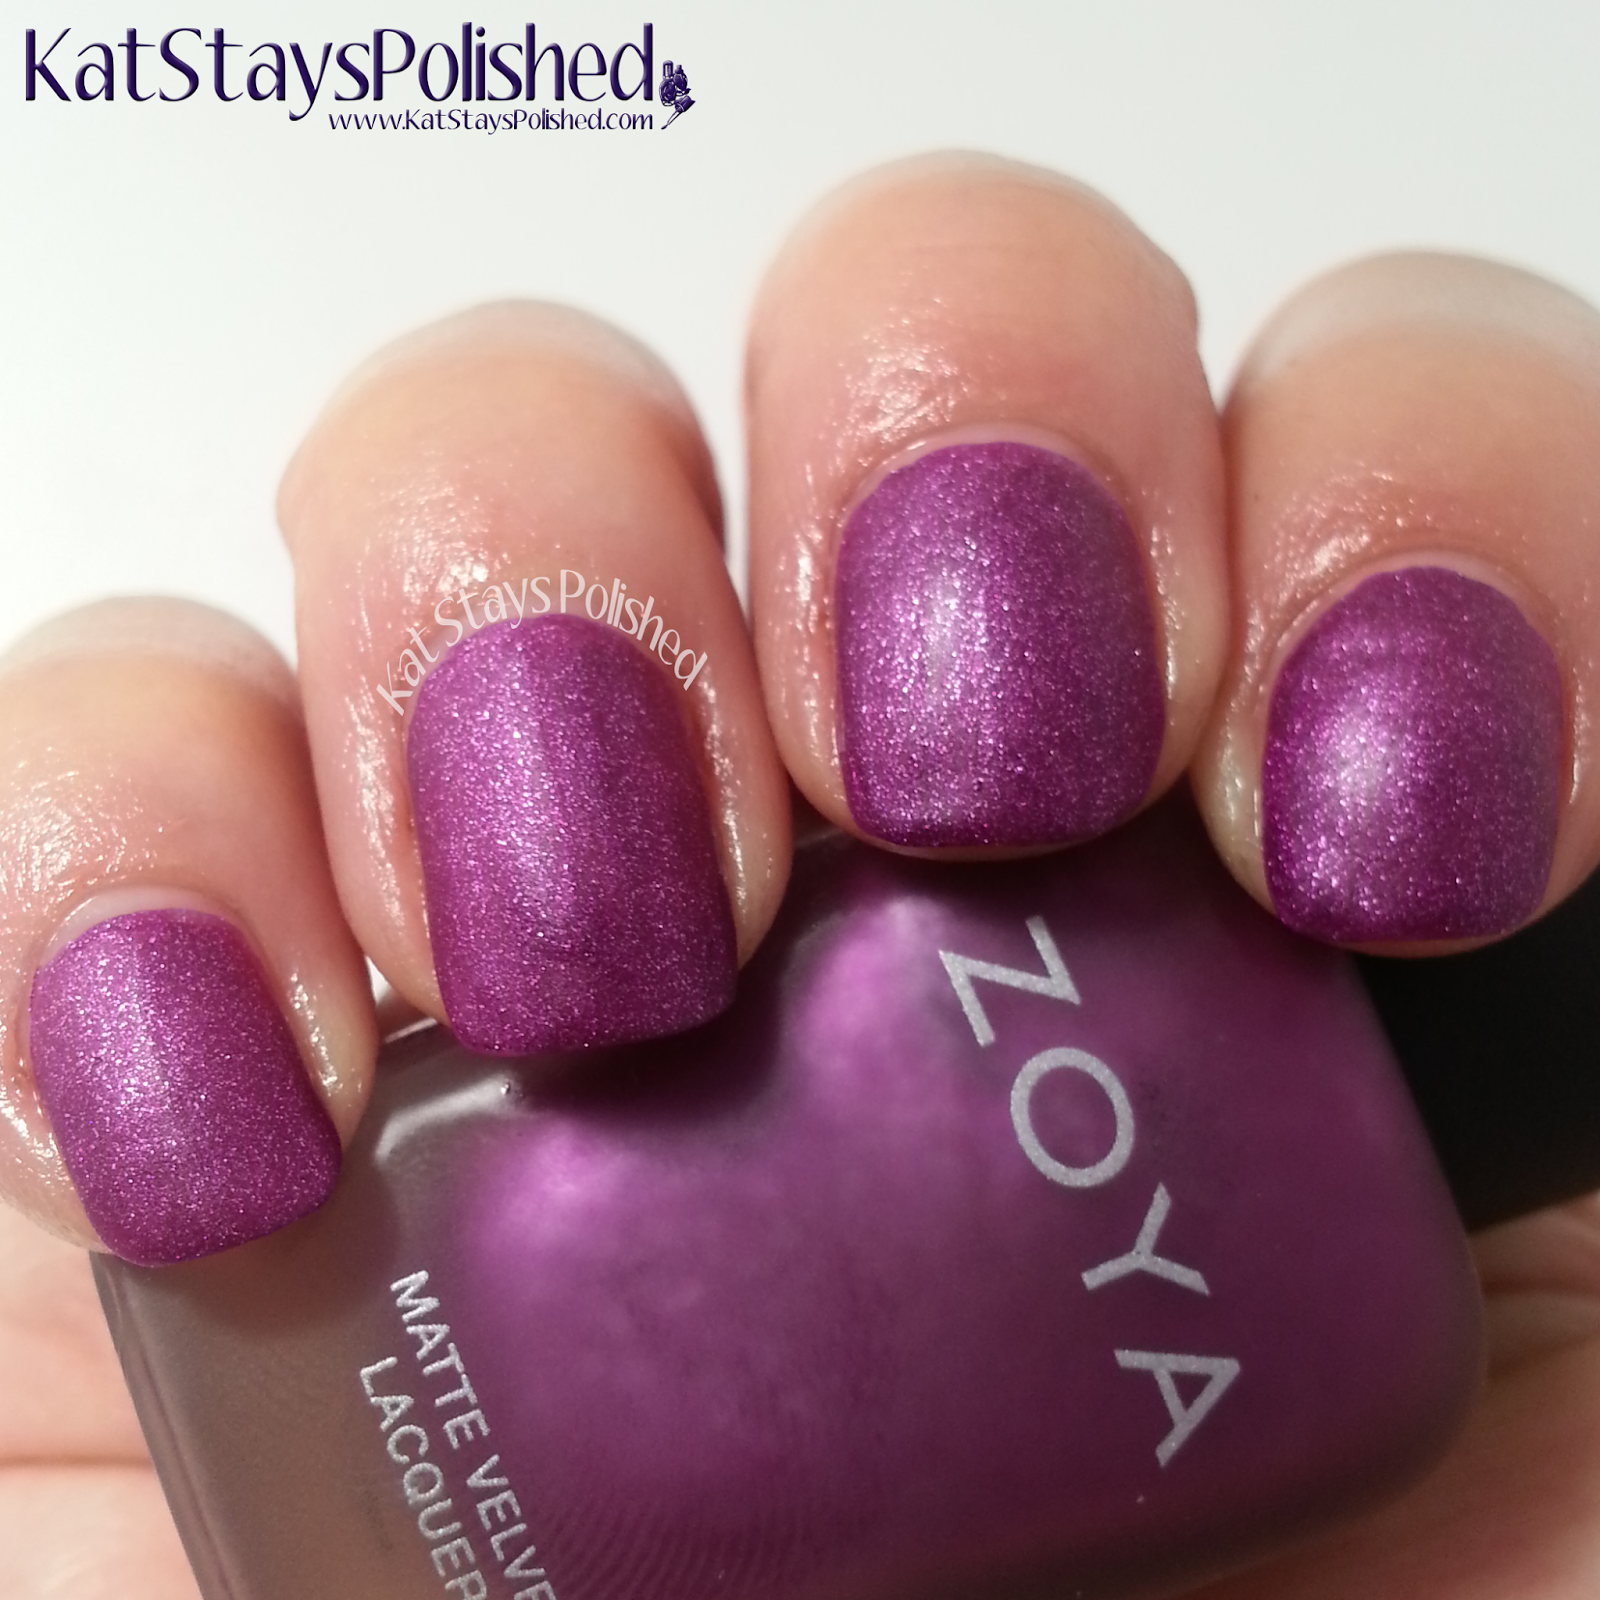 Zoya Matte Velvet - Harlow | Kat Stays Polished